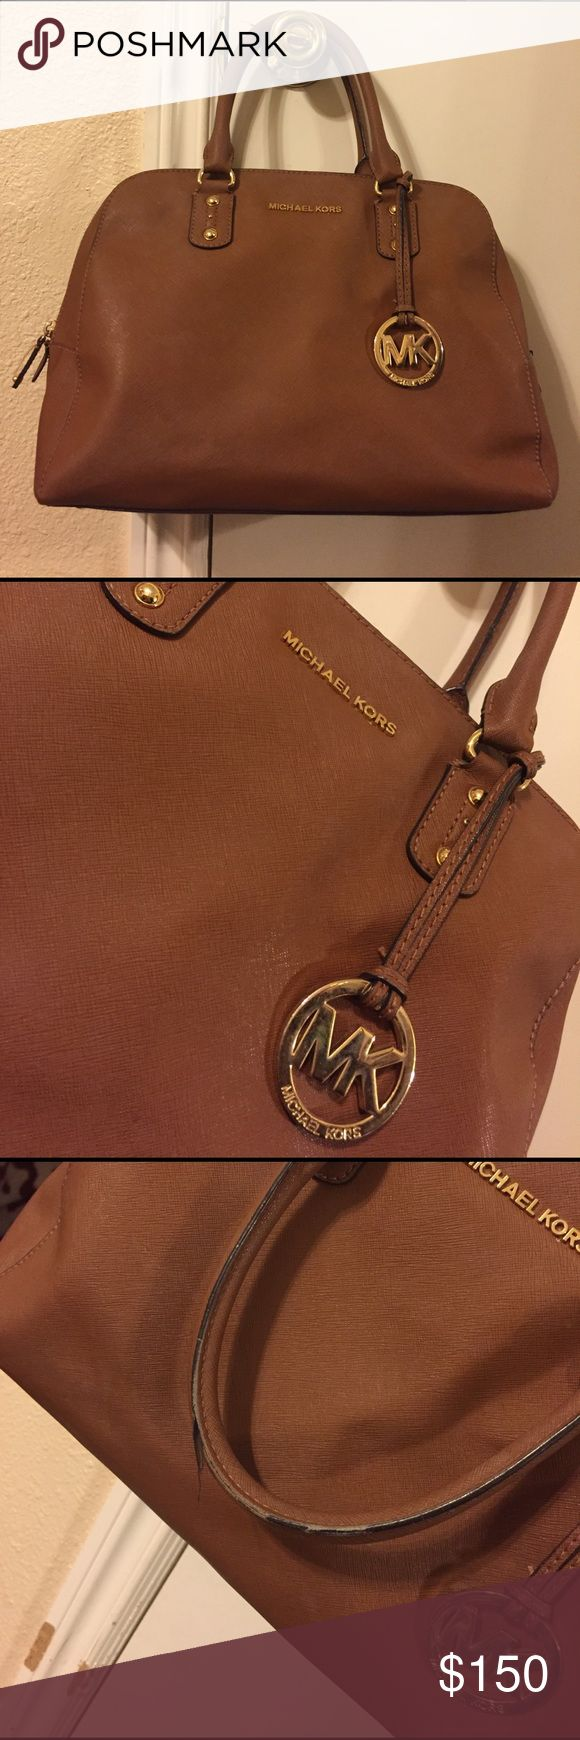 Michael Kors bag Authentic. Used. Signs of wear can be seen on straps and inside bag are marks. Still a lot of life in this bag. Comes with cross body strap that has never been used. Saffiano leather Michael Kors Bags